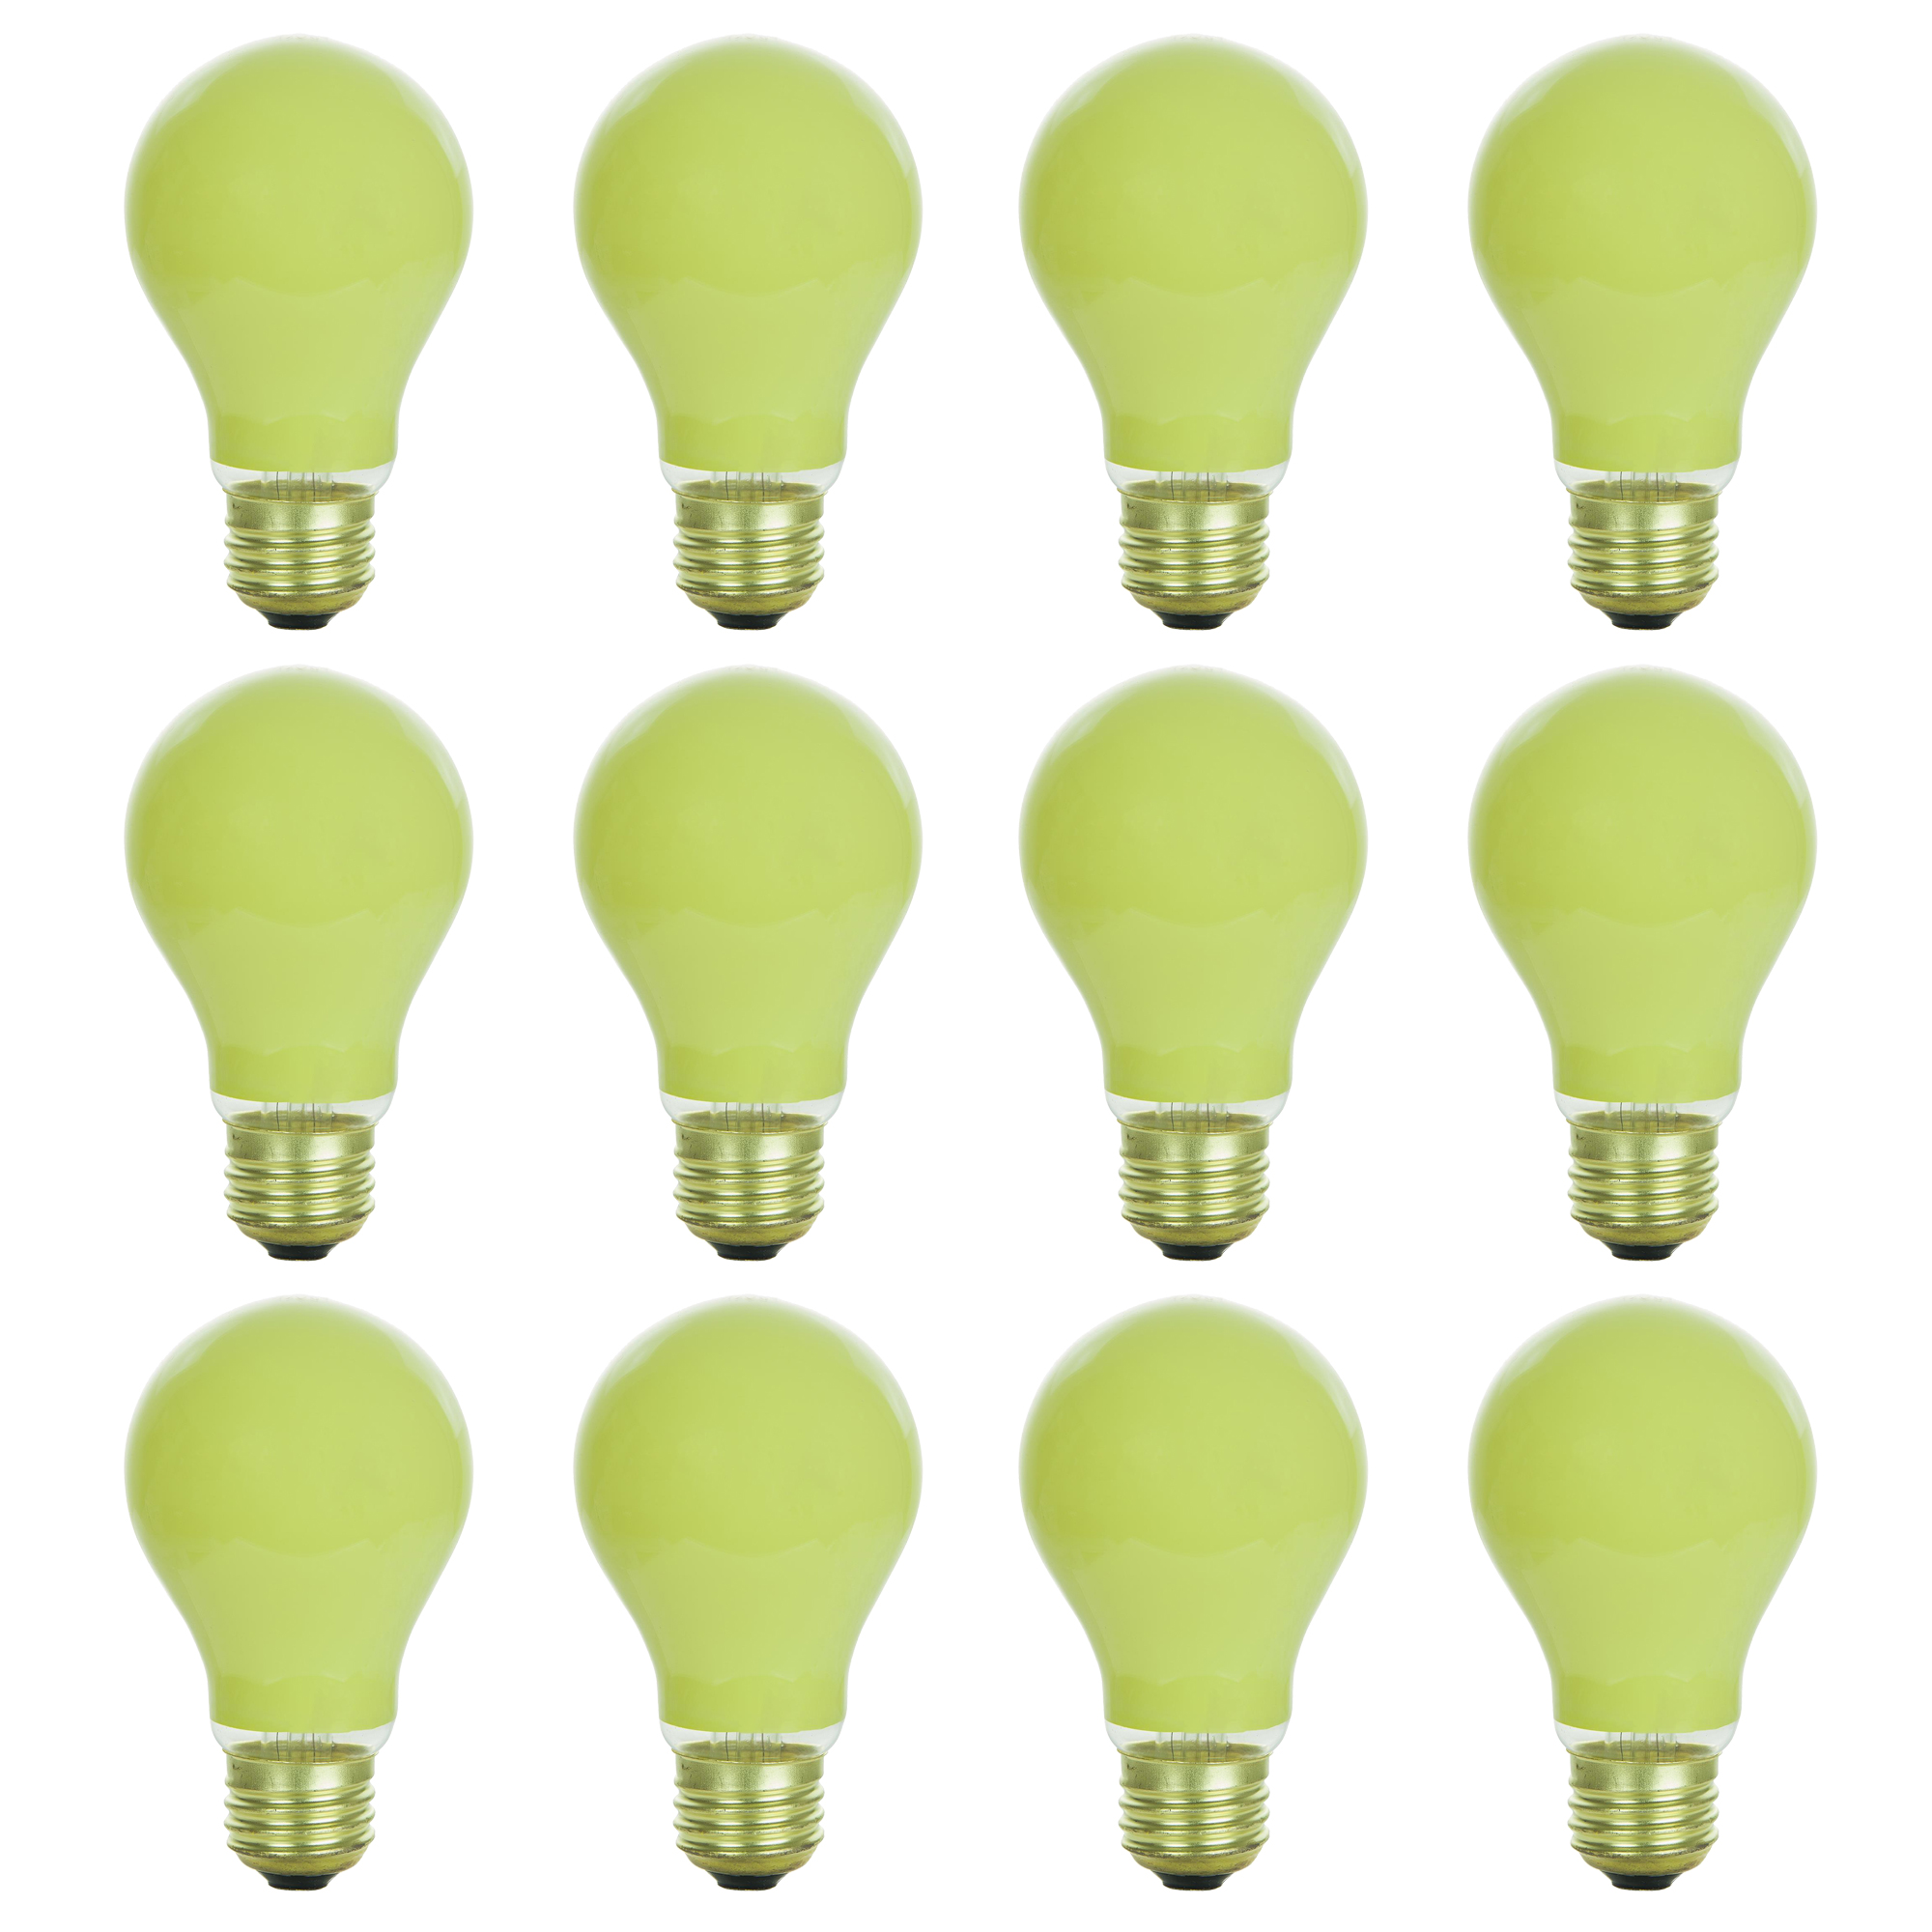 12 Pack of Sunlite 25 watt Ceramic Yellow Colored Incandescent Light Bulb - Parties, Decorative, and Holiday 1,250 Average Life Hours